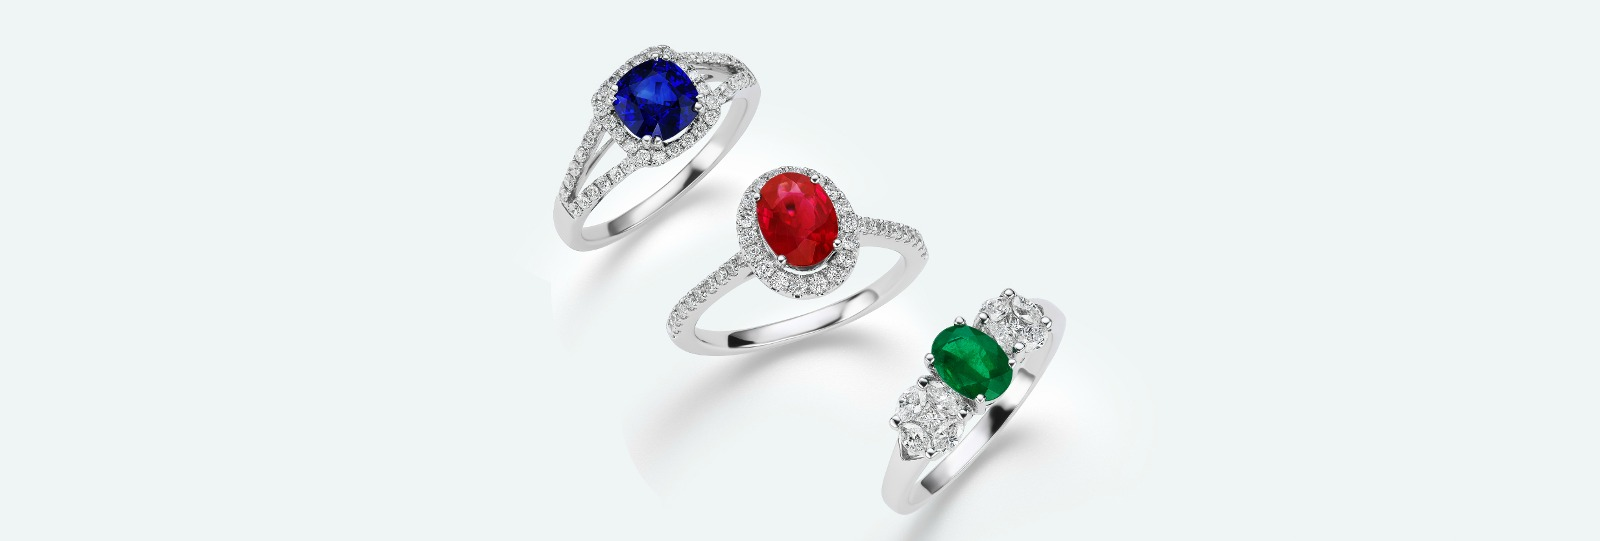 rings la e jardin lightbox product journee gold joyeuse ring engagement gemstone multi nadine plated journ coloured